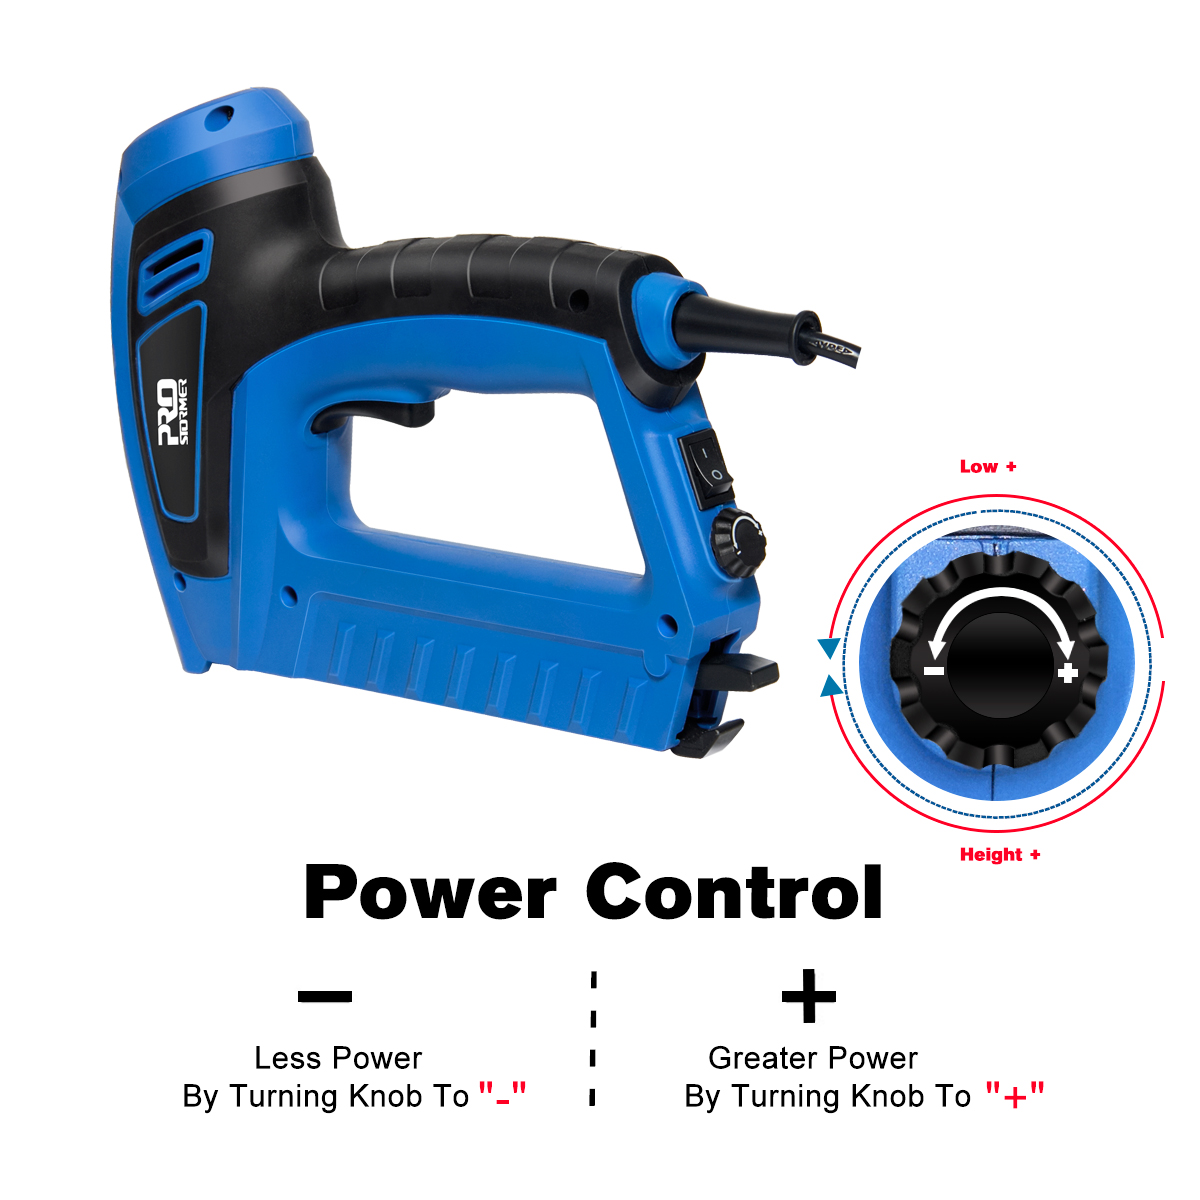 Tools : 2000W Electric Nail Gun 220V-240V Nailer Stapler Woodworking Electric Tacker Furniture Staple Gun Power Tools by PROSTORMER